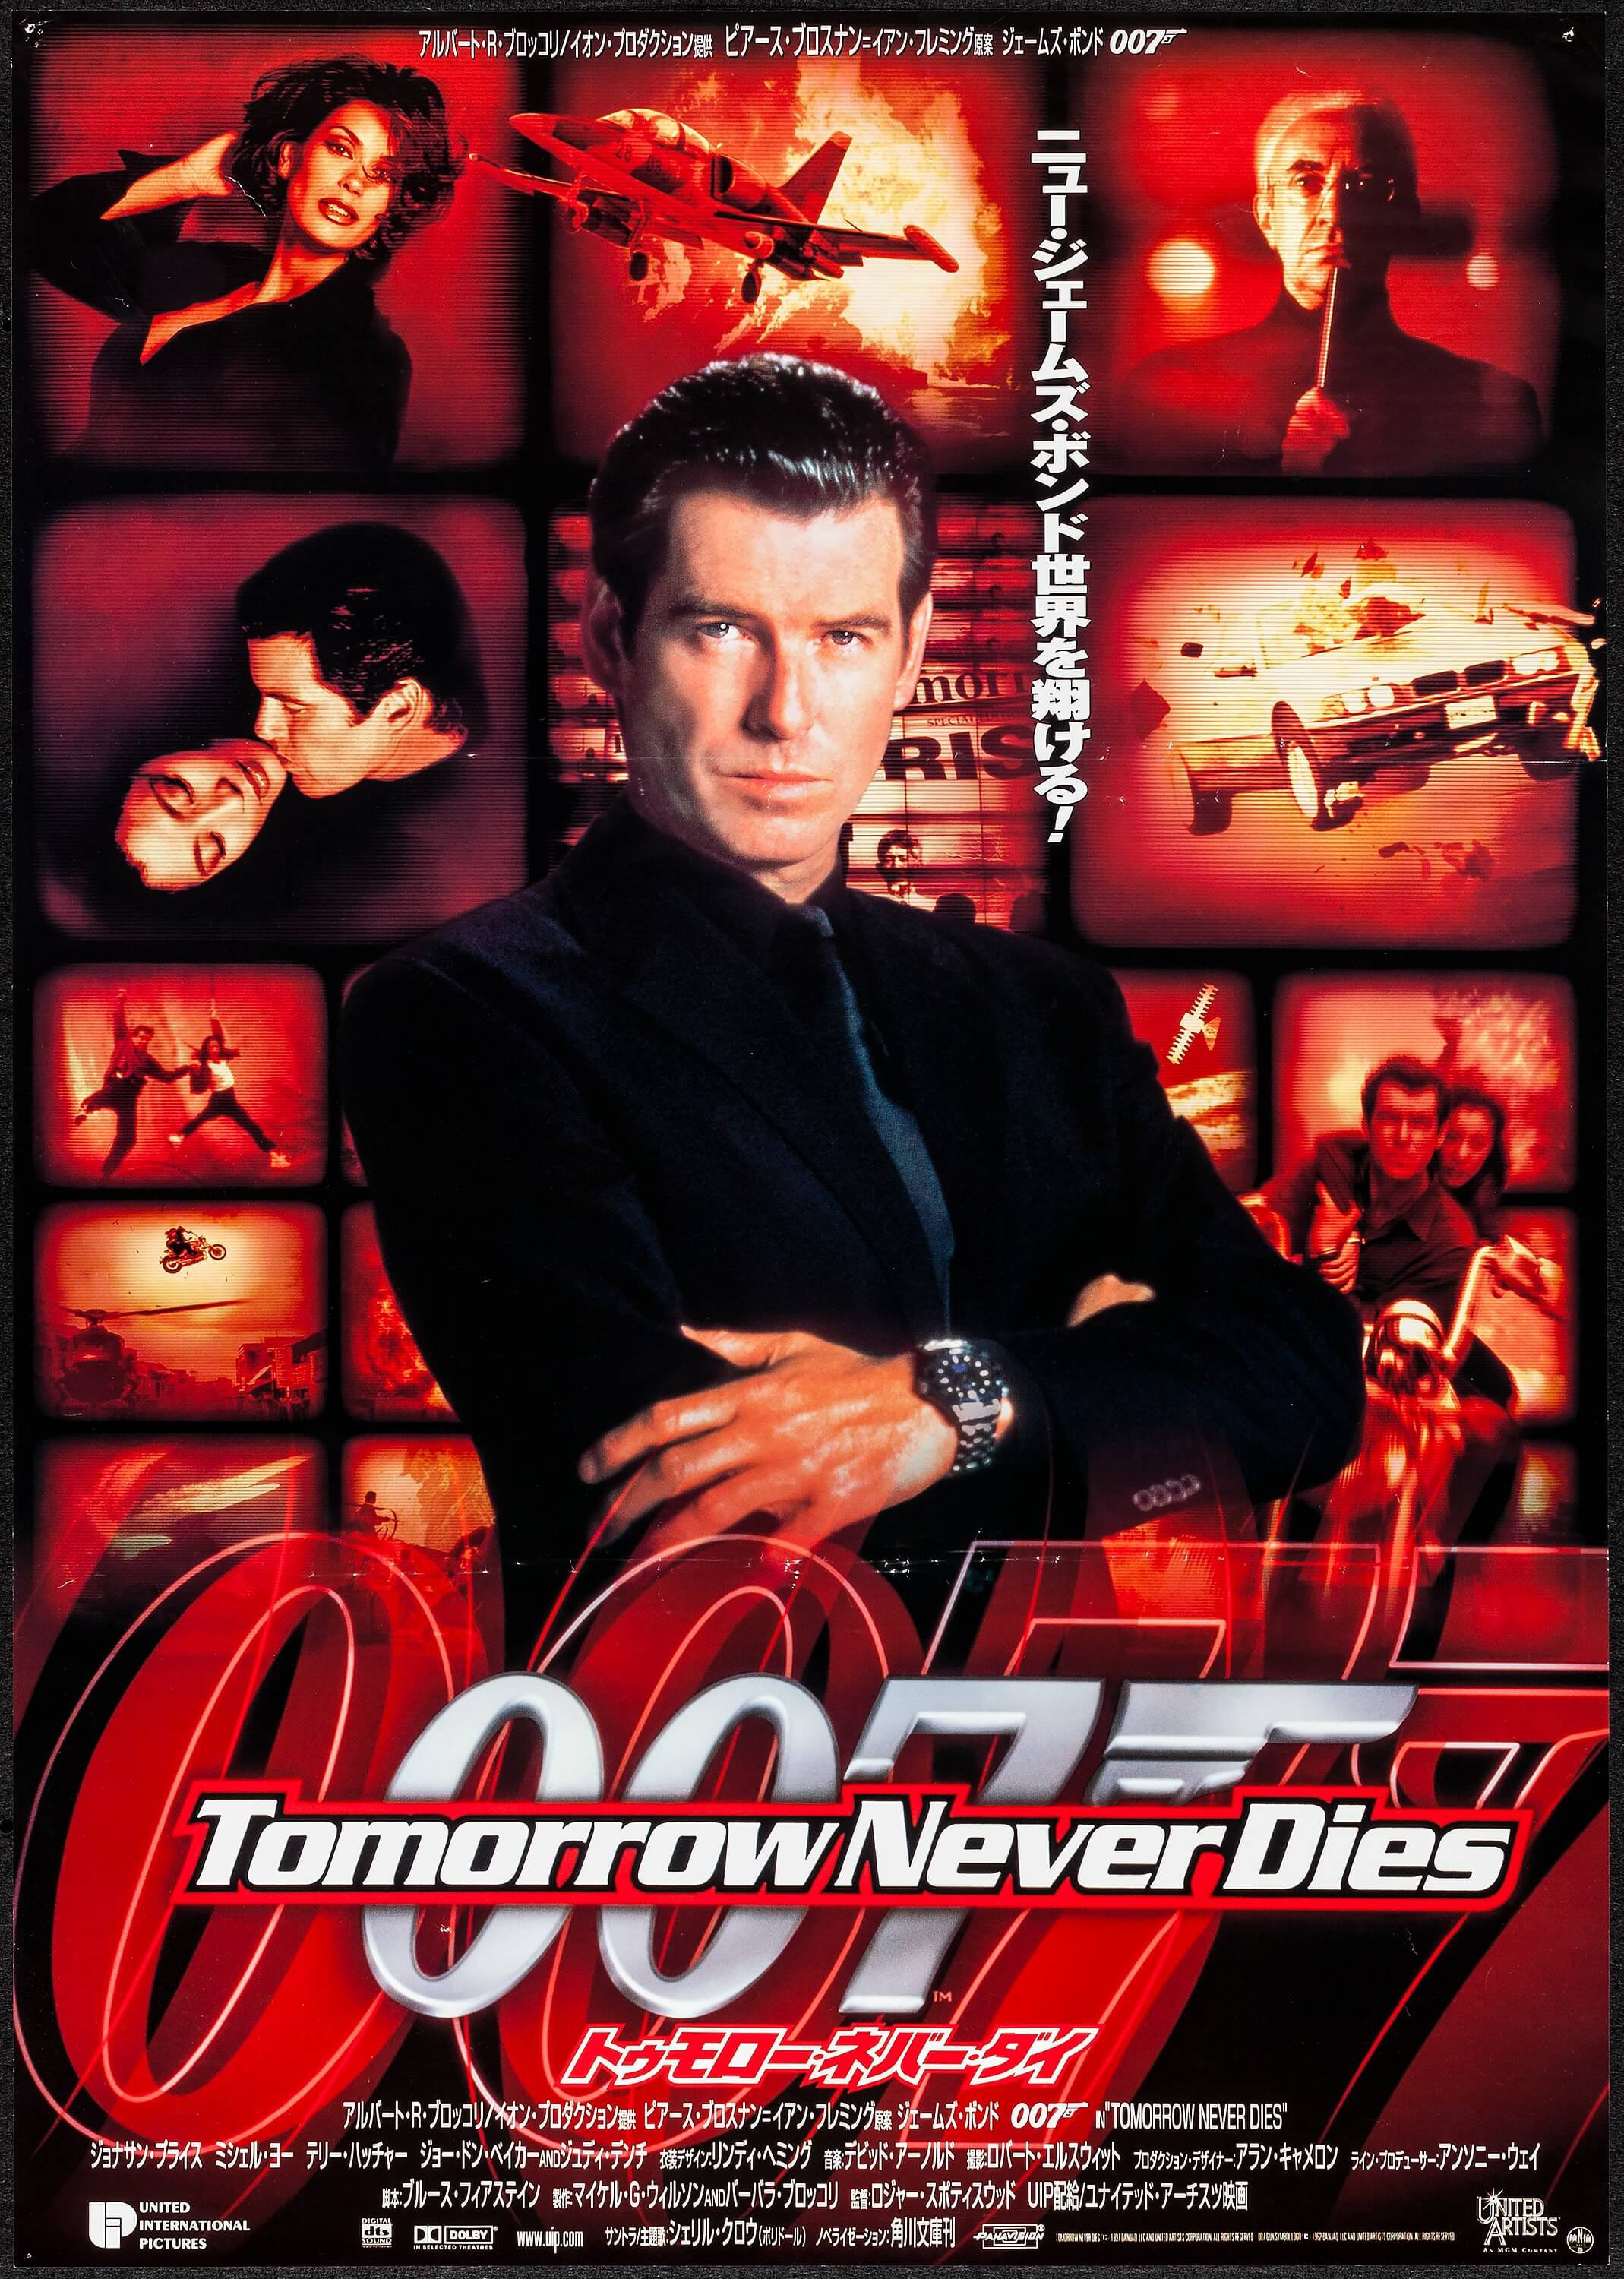 Tomorrow Never Dies United Artists 1997 Japanese B2 20 25 X Lot 51446 Heritage Auctions